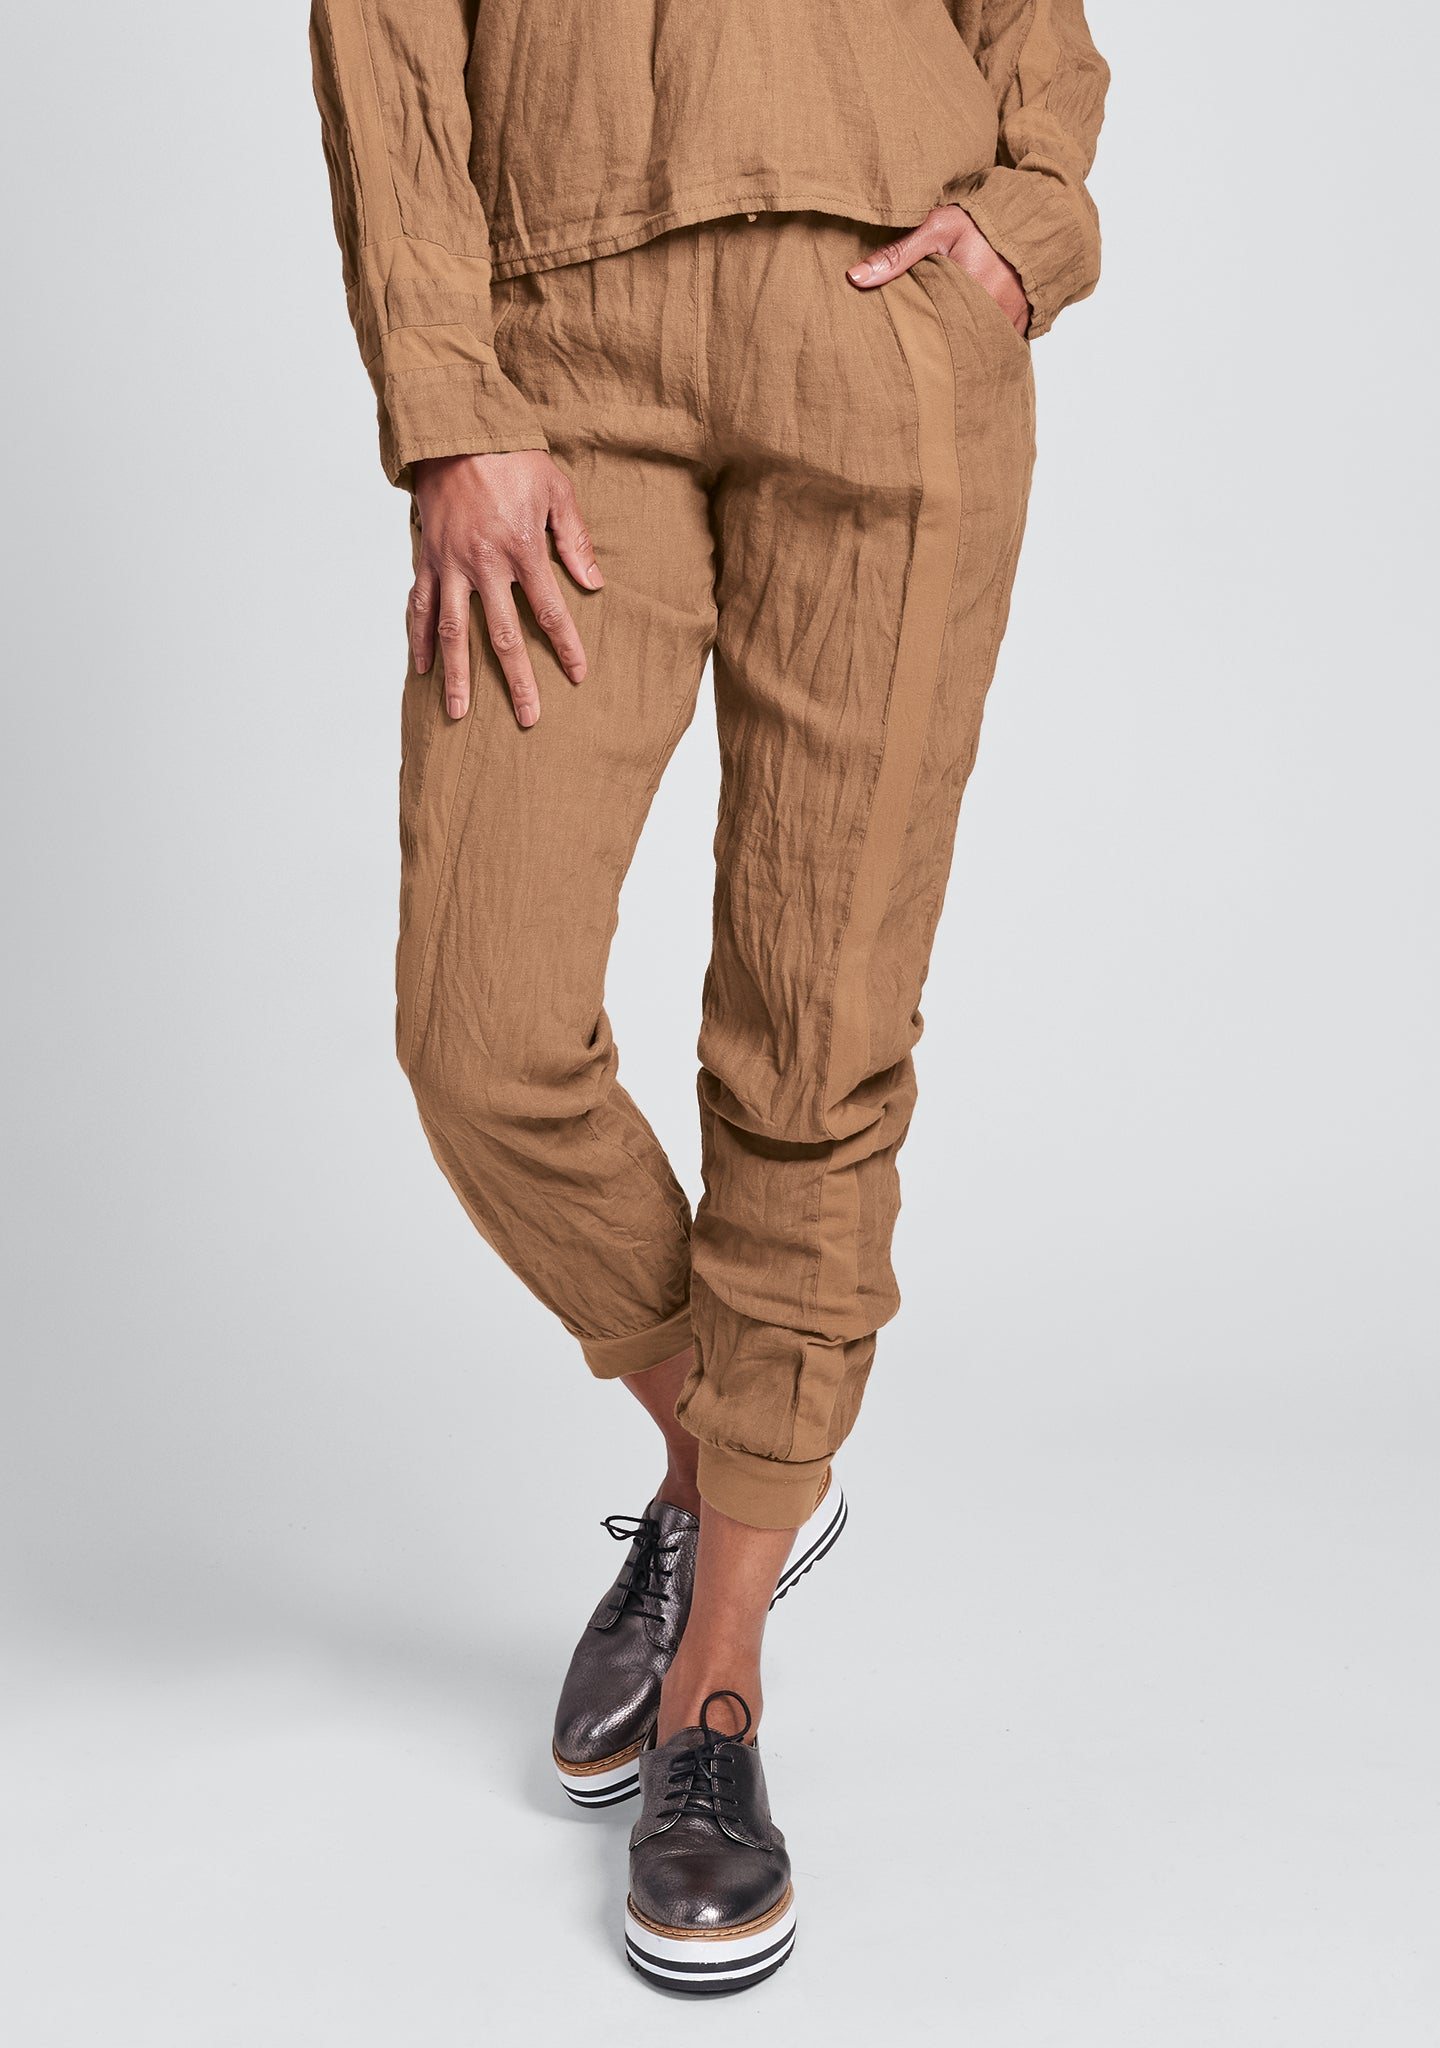 patriot pant linen drawstring pant orange